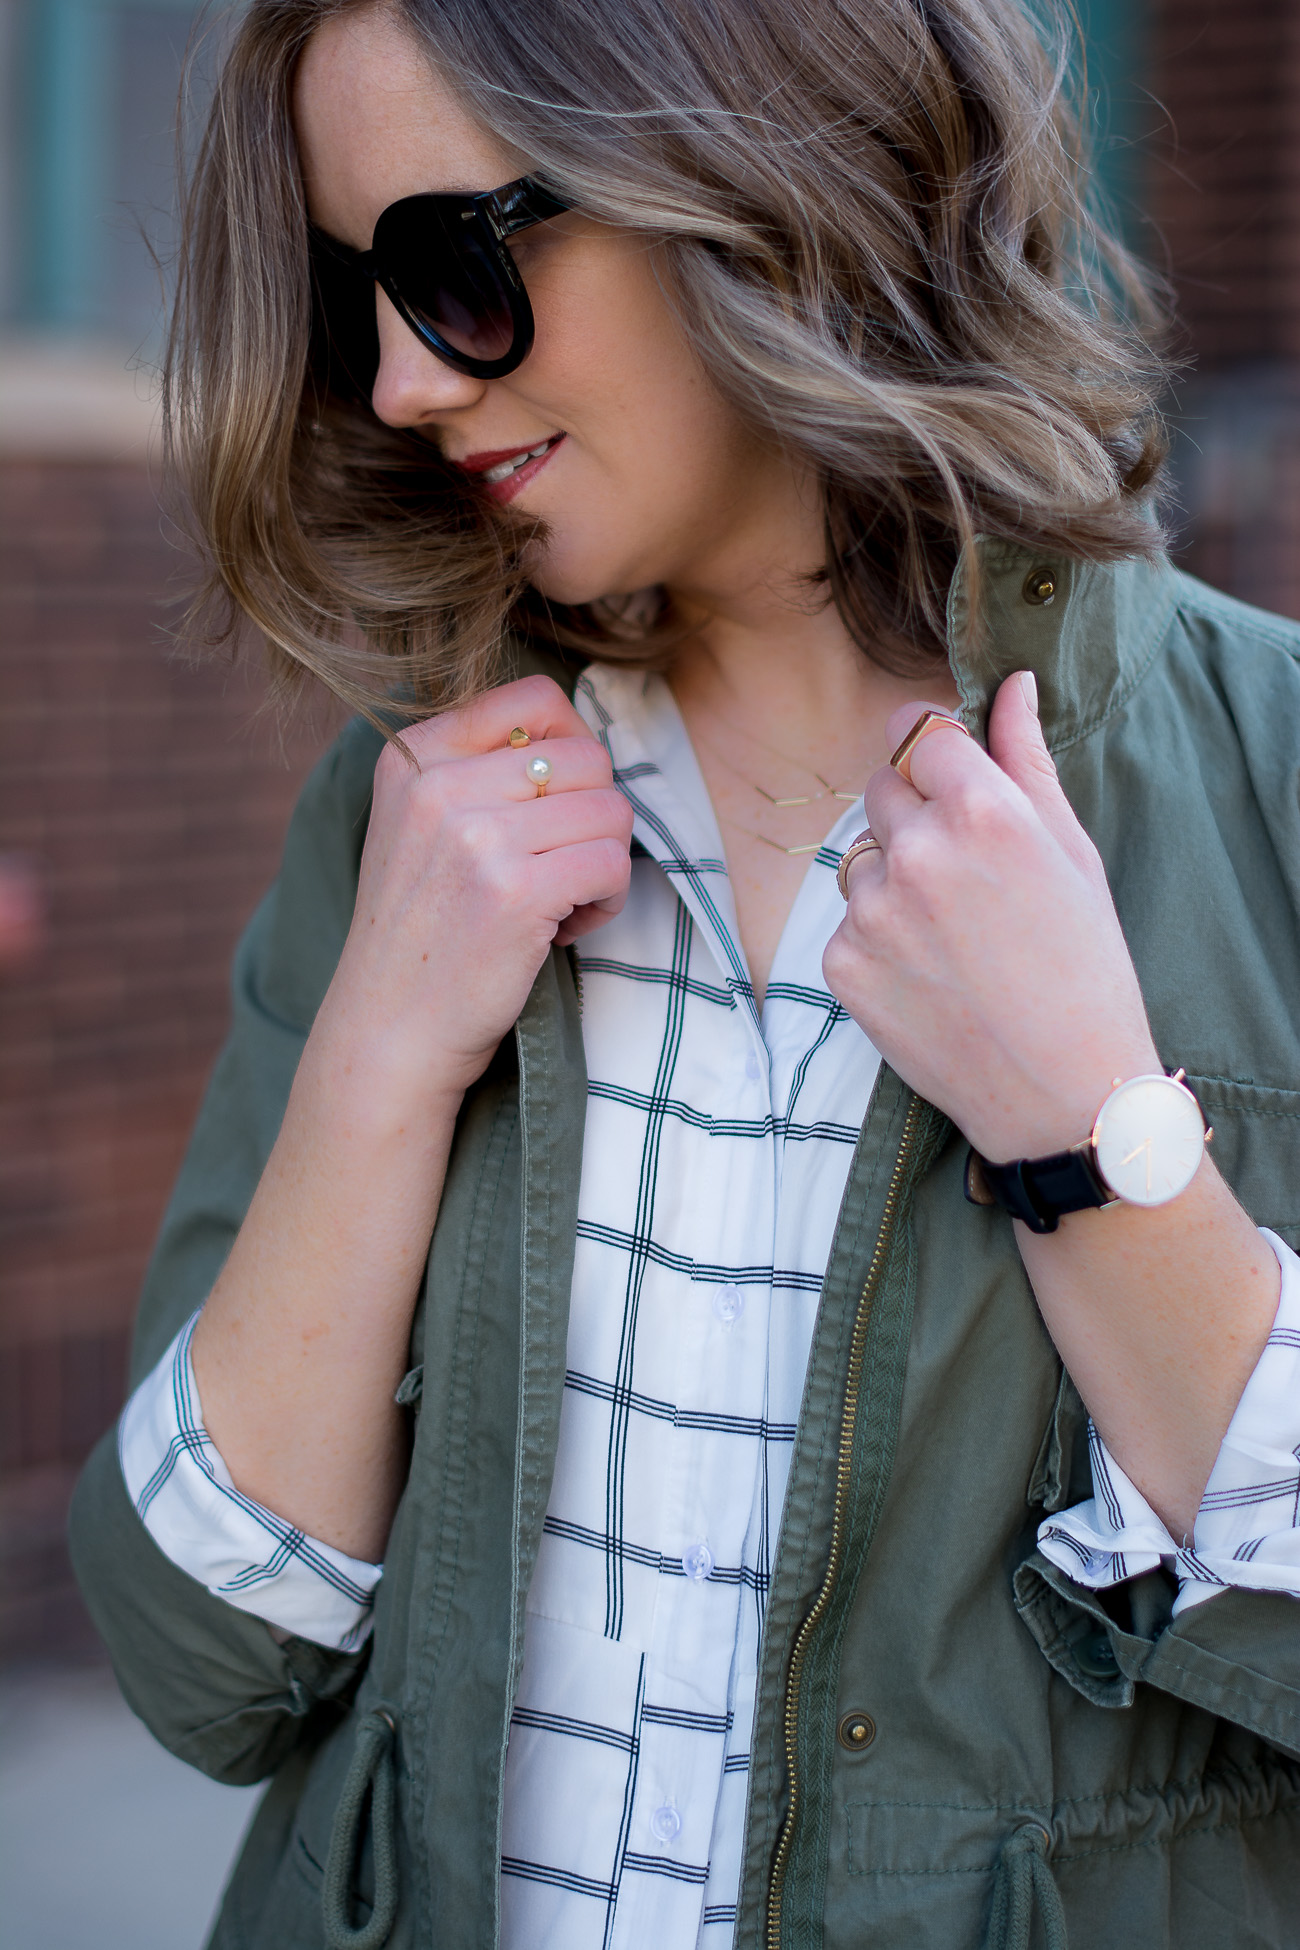 cargo-jacket-black-and-white-grid-print-delicate-jewelry